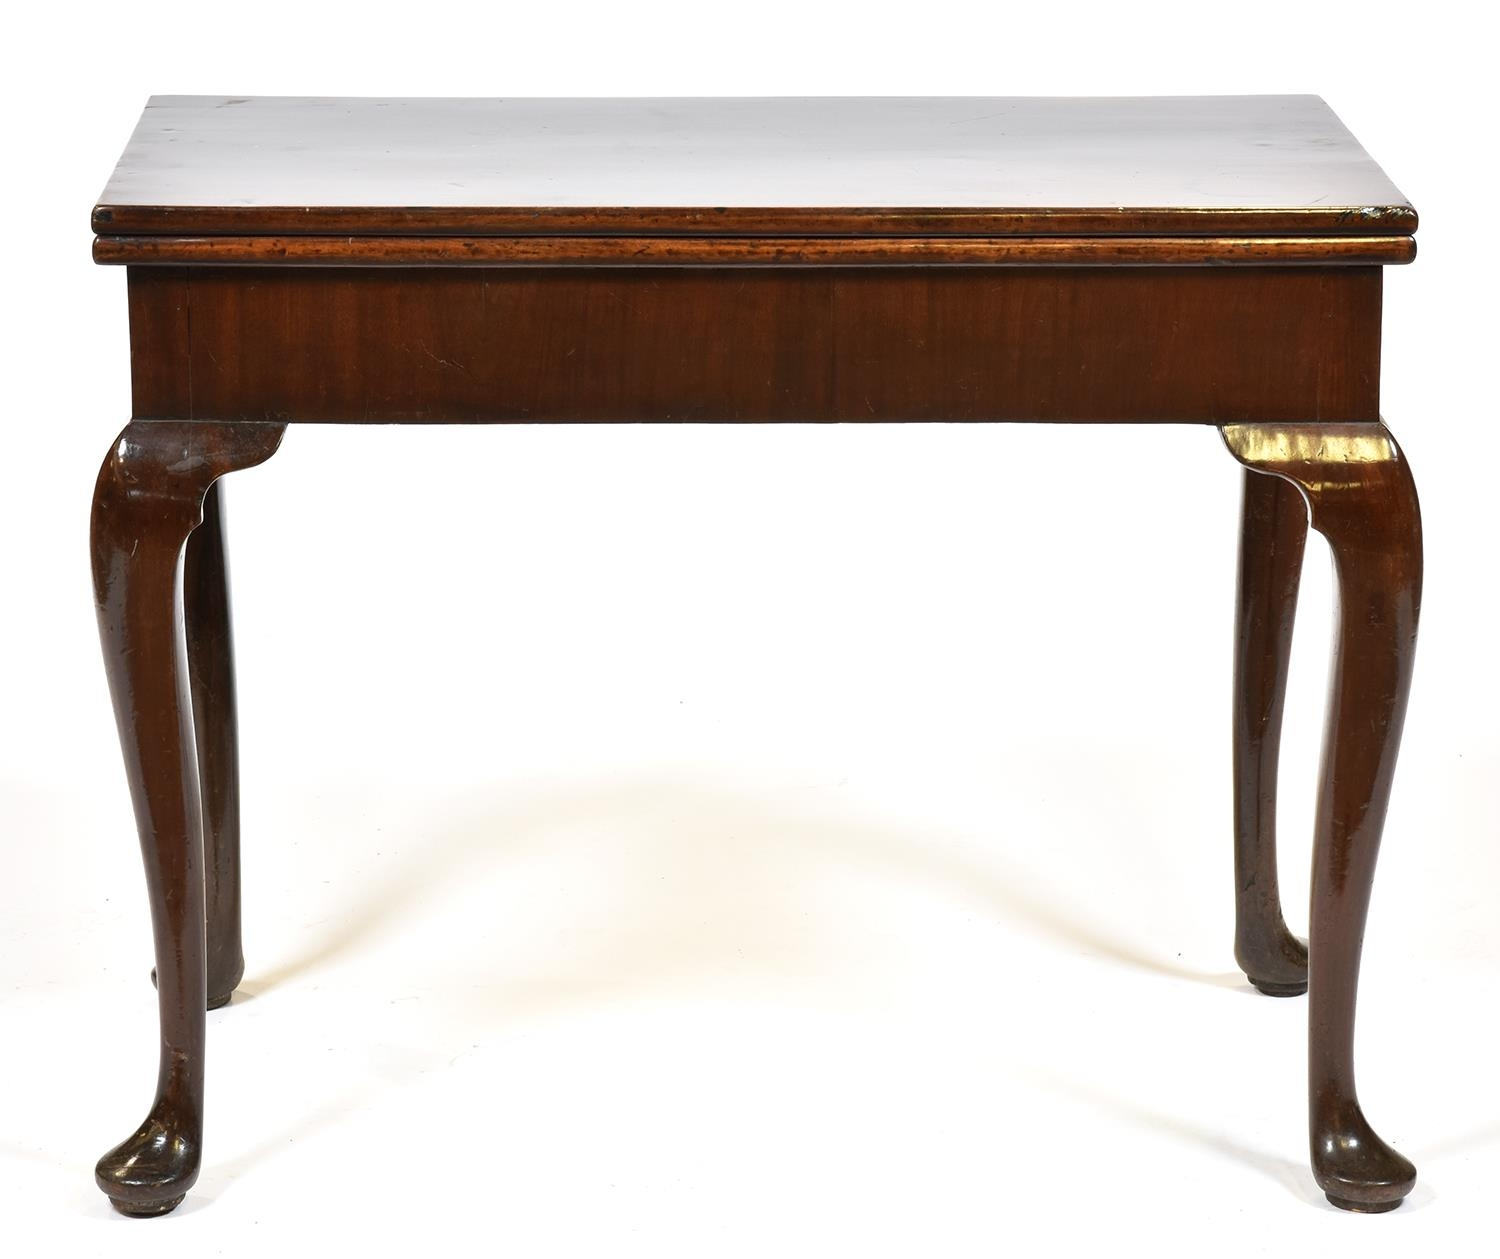 A George III concertina-action mahogany card table, mid 18th c, the top with counter wells on